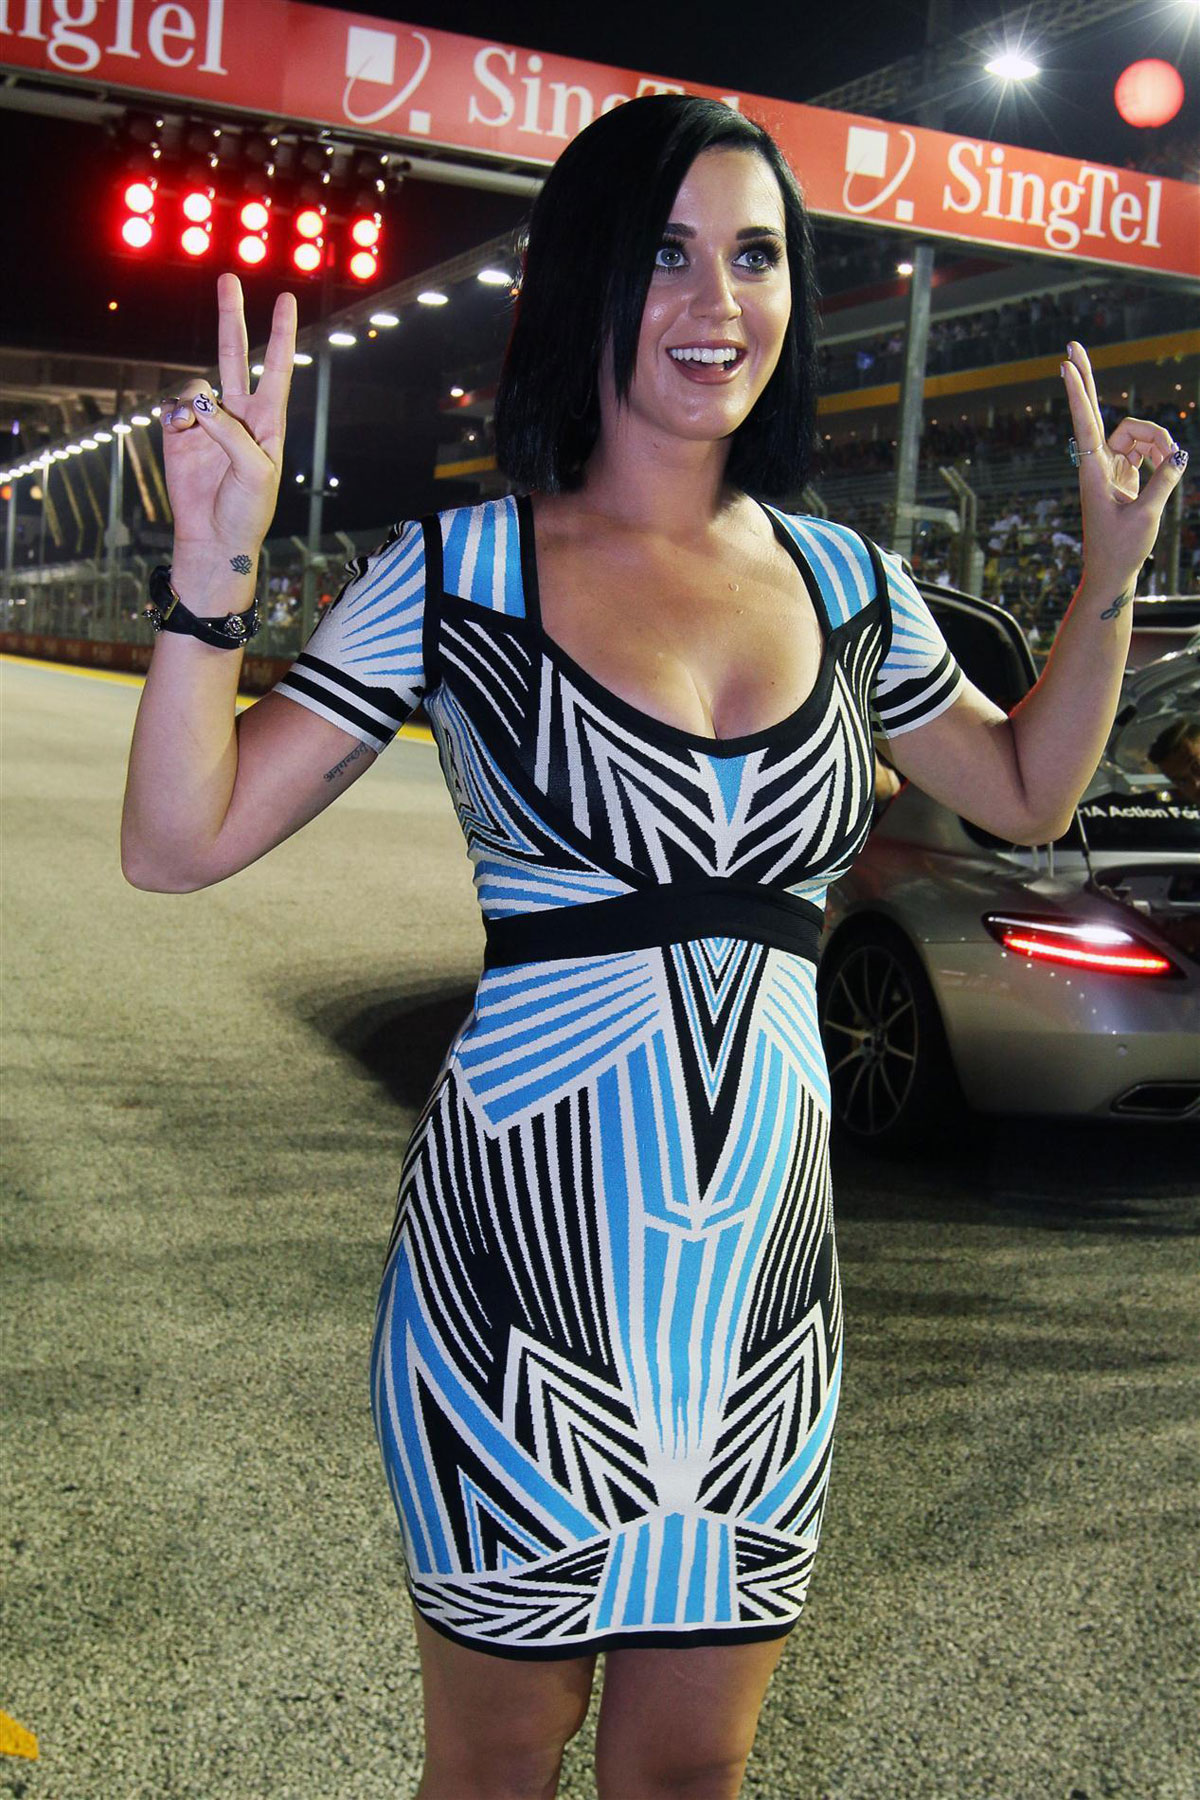 F1 Grand Prix Race Katy Perry At F1 Grand Prix Of Singapore At The Marina Bay